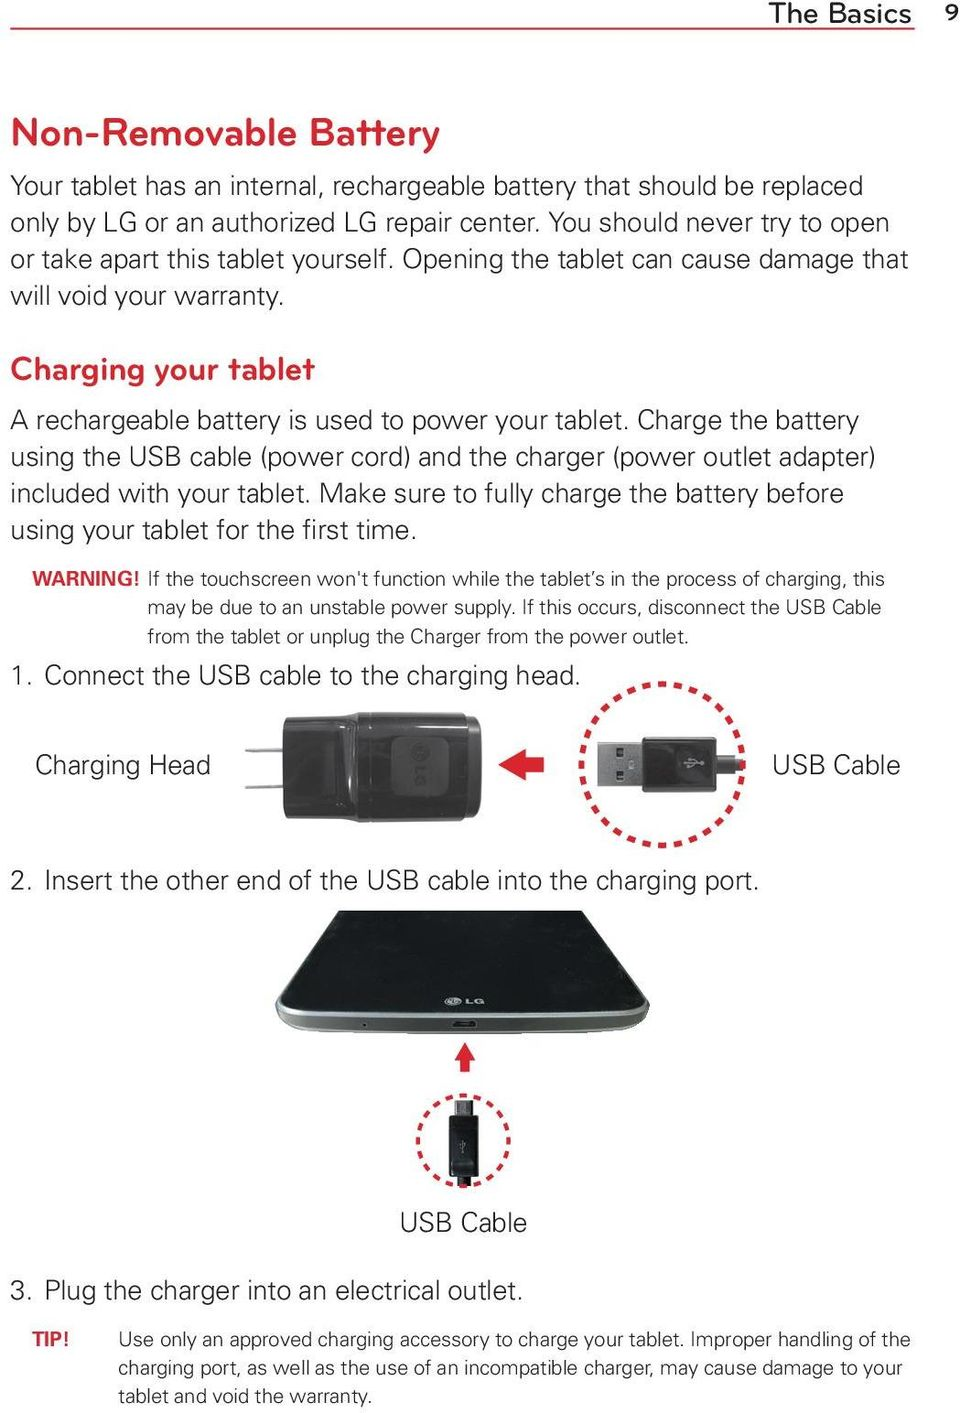 Charging your tablet A rechargeable battery is used to power your tablet. Charge the battery using the USB cable (power cord) and the charger (power outlet adapter) included with your tablet.